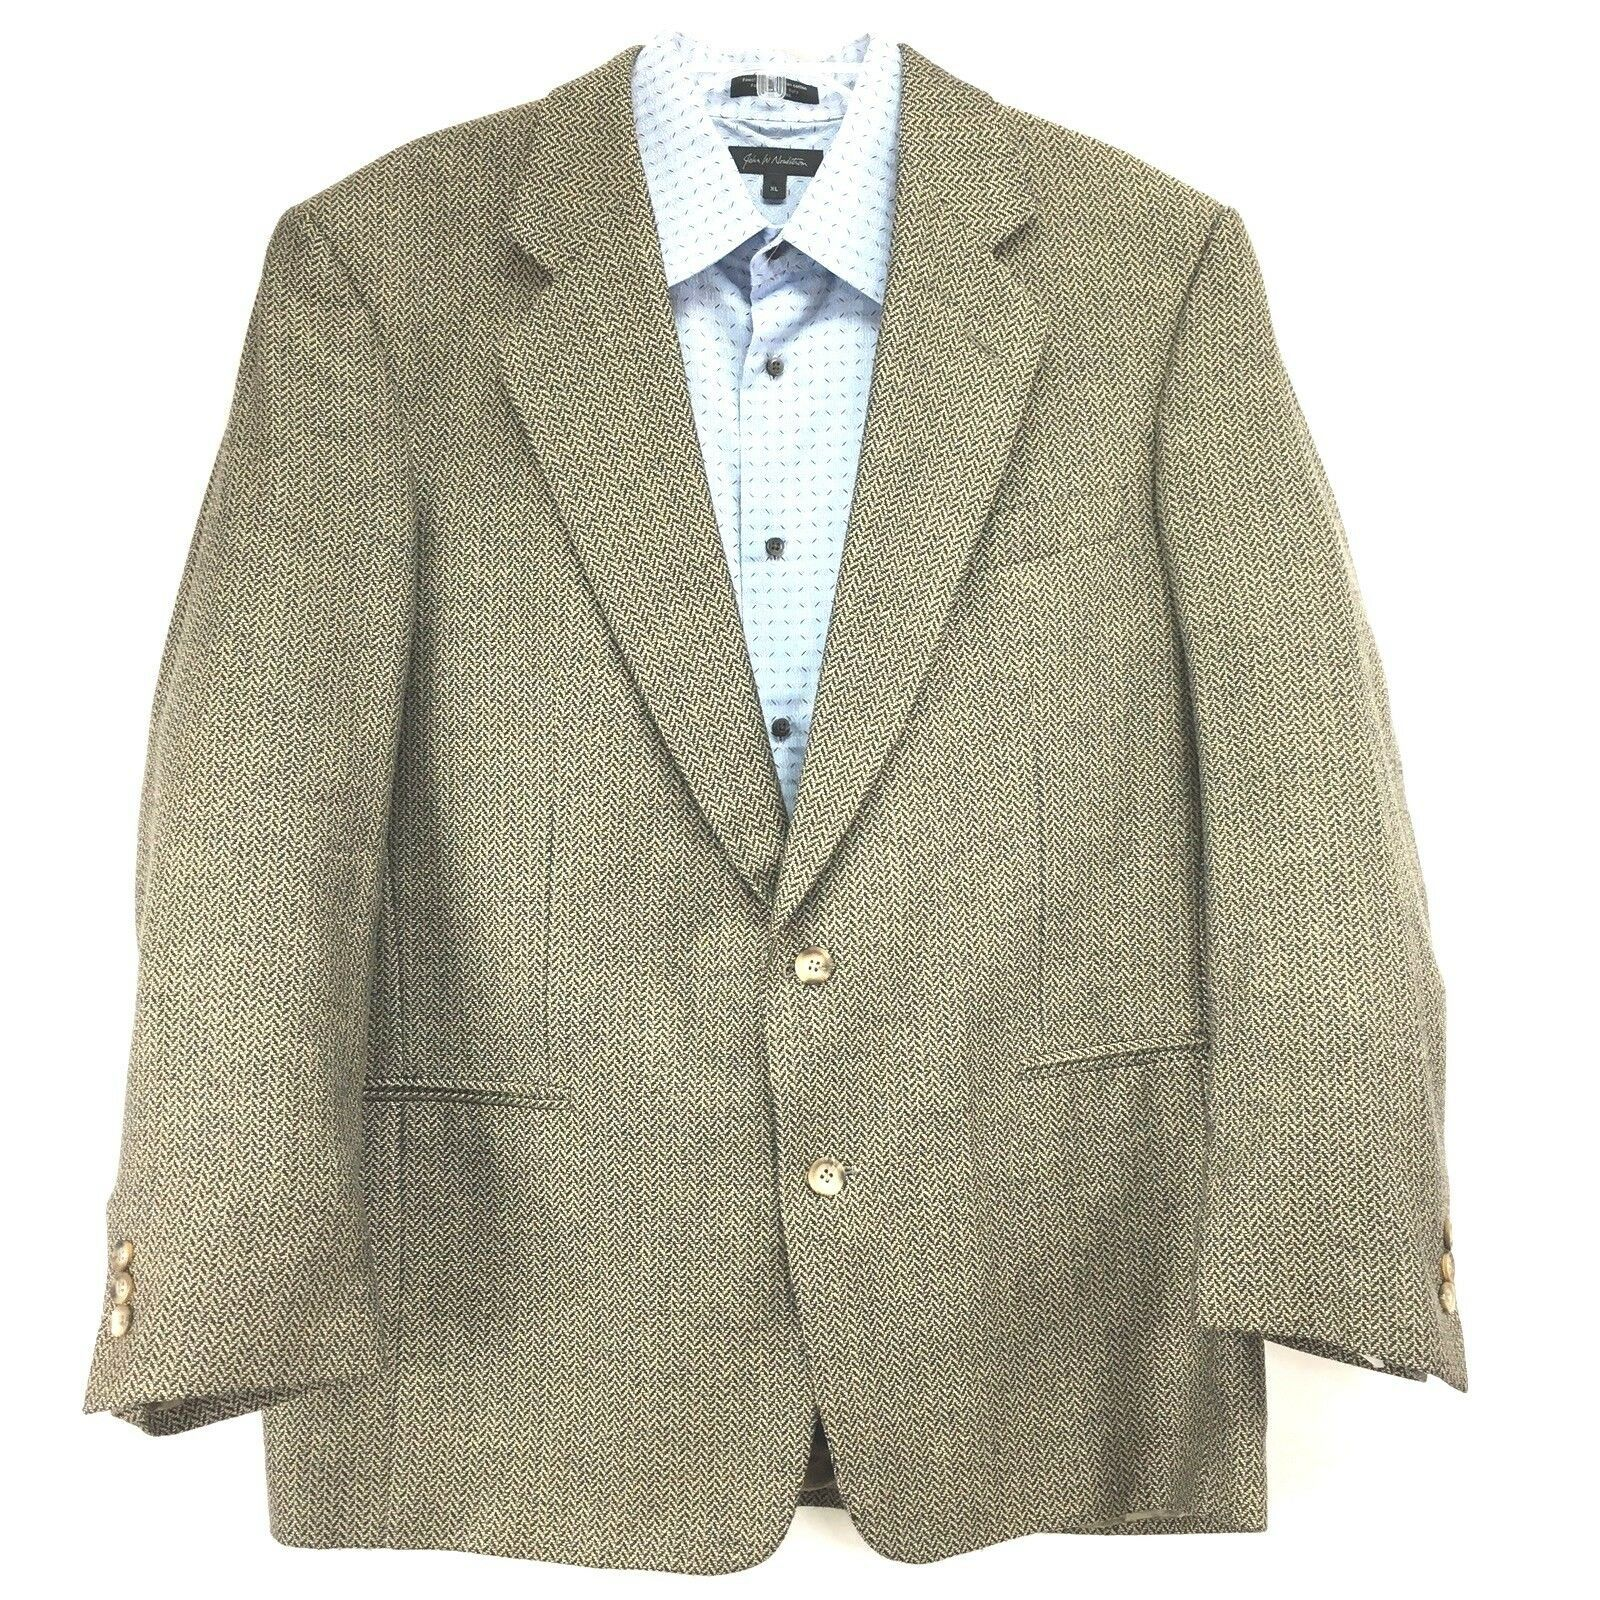 Primary image for VITO RUFOLO Mens Sport Coat Jacket 44R Silk/Wool Brown